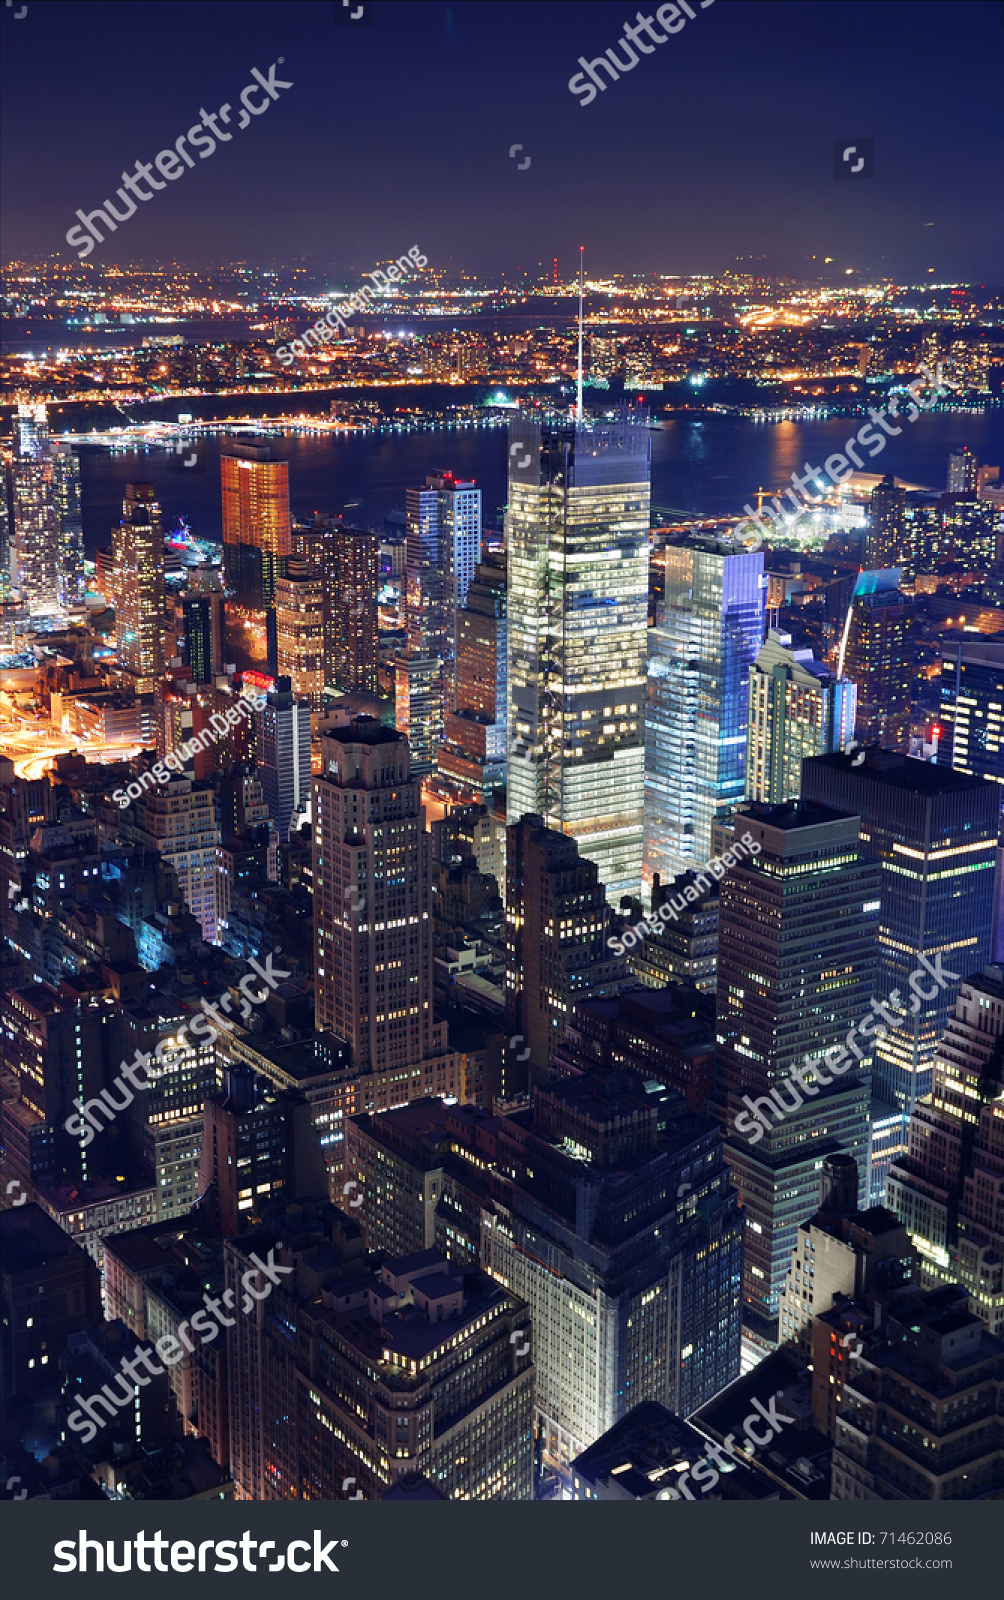 how to get from times square to see manhattan skyline